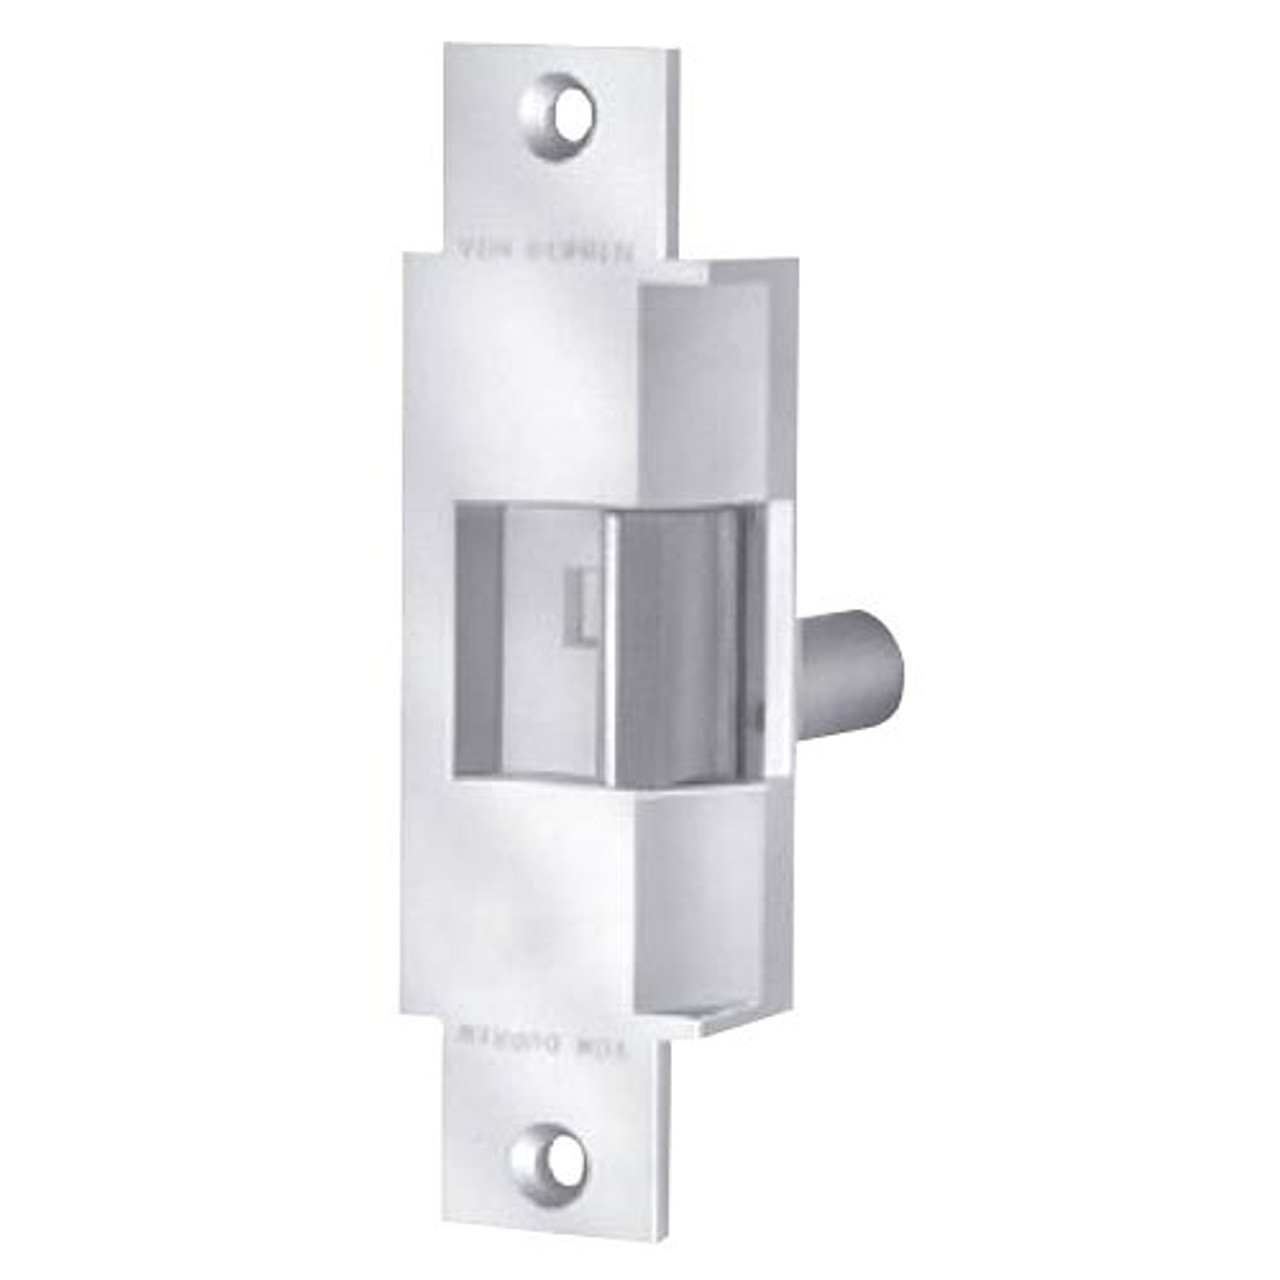 6223-DS-12VDC-US32 Von Duprin Electric Strike in Bright Stainless Steel Finish